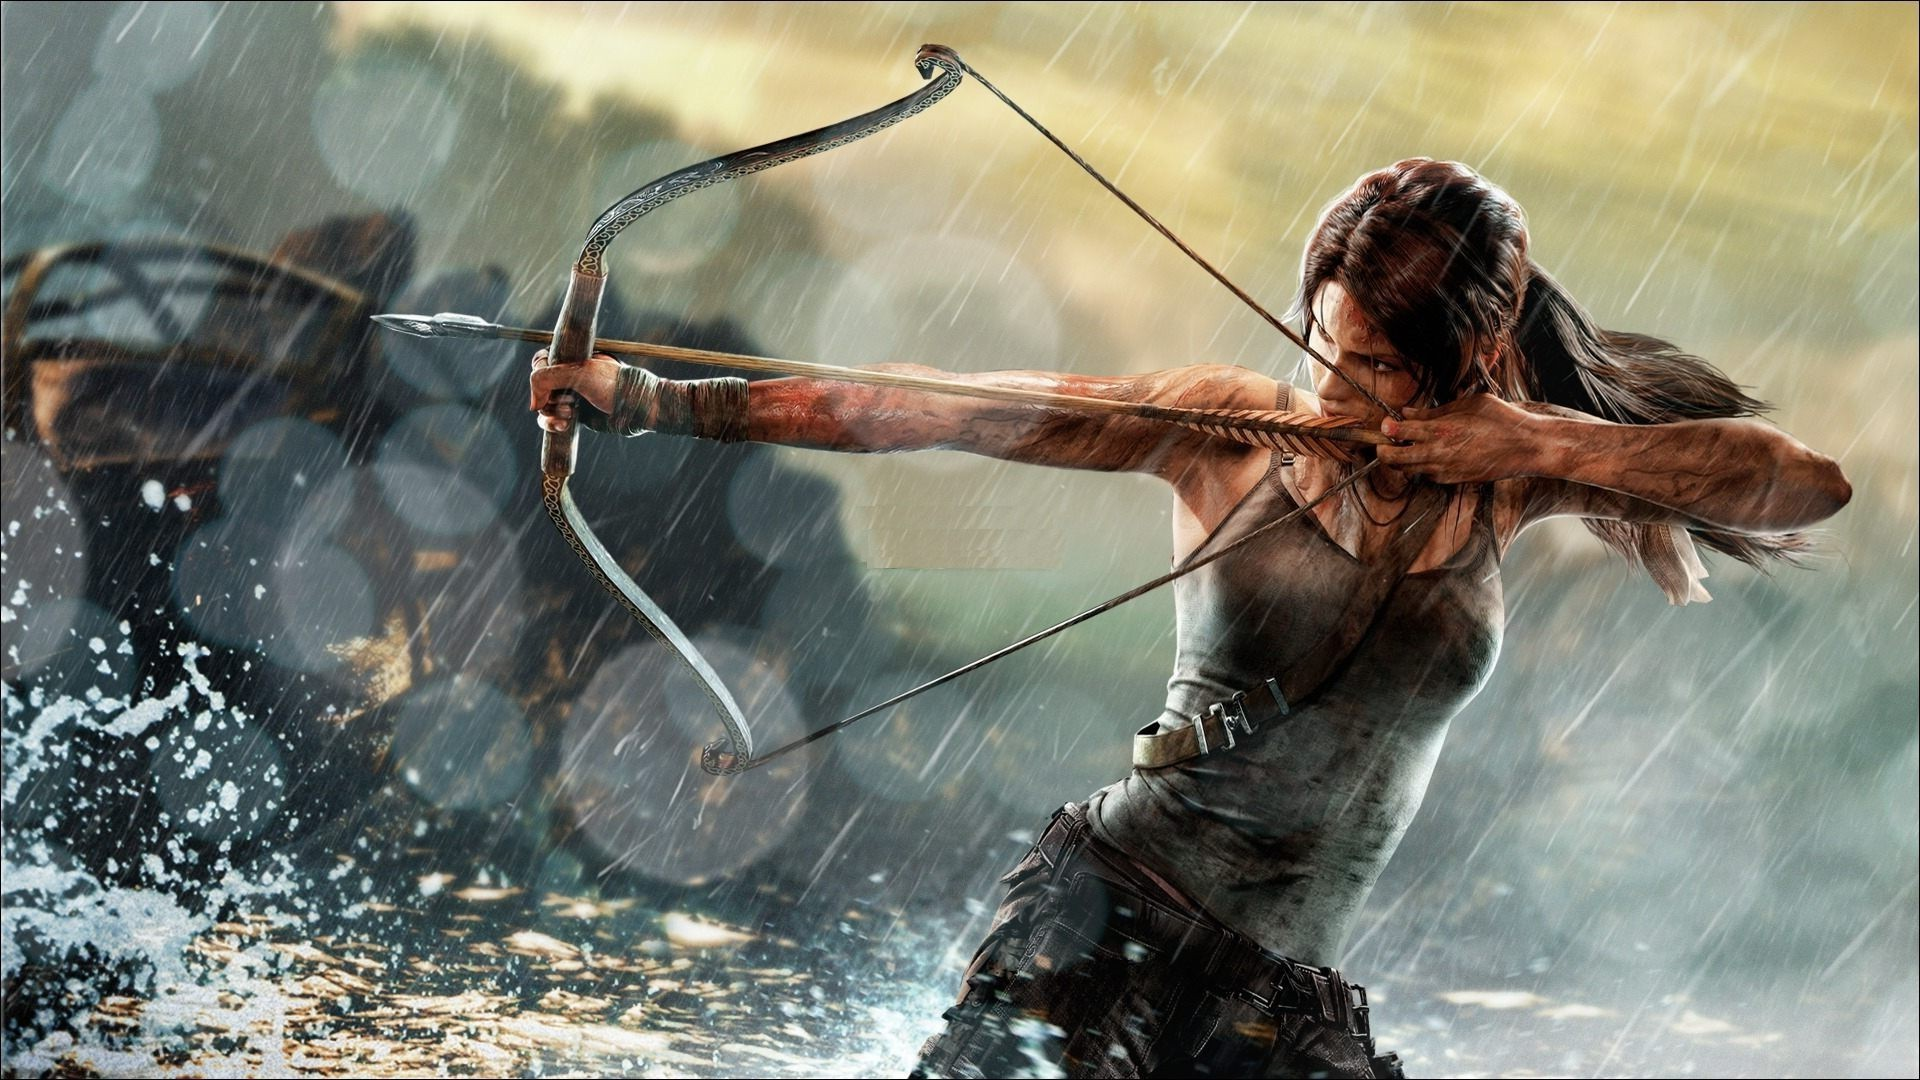 1920x1080 Archery Wallpaper 20 - 1920 X 1080